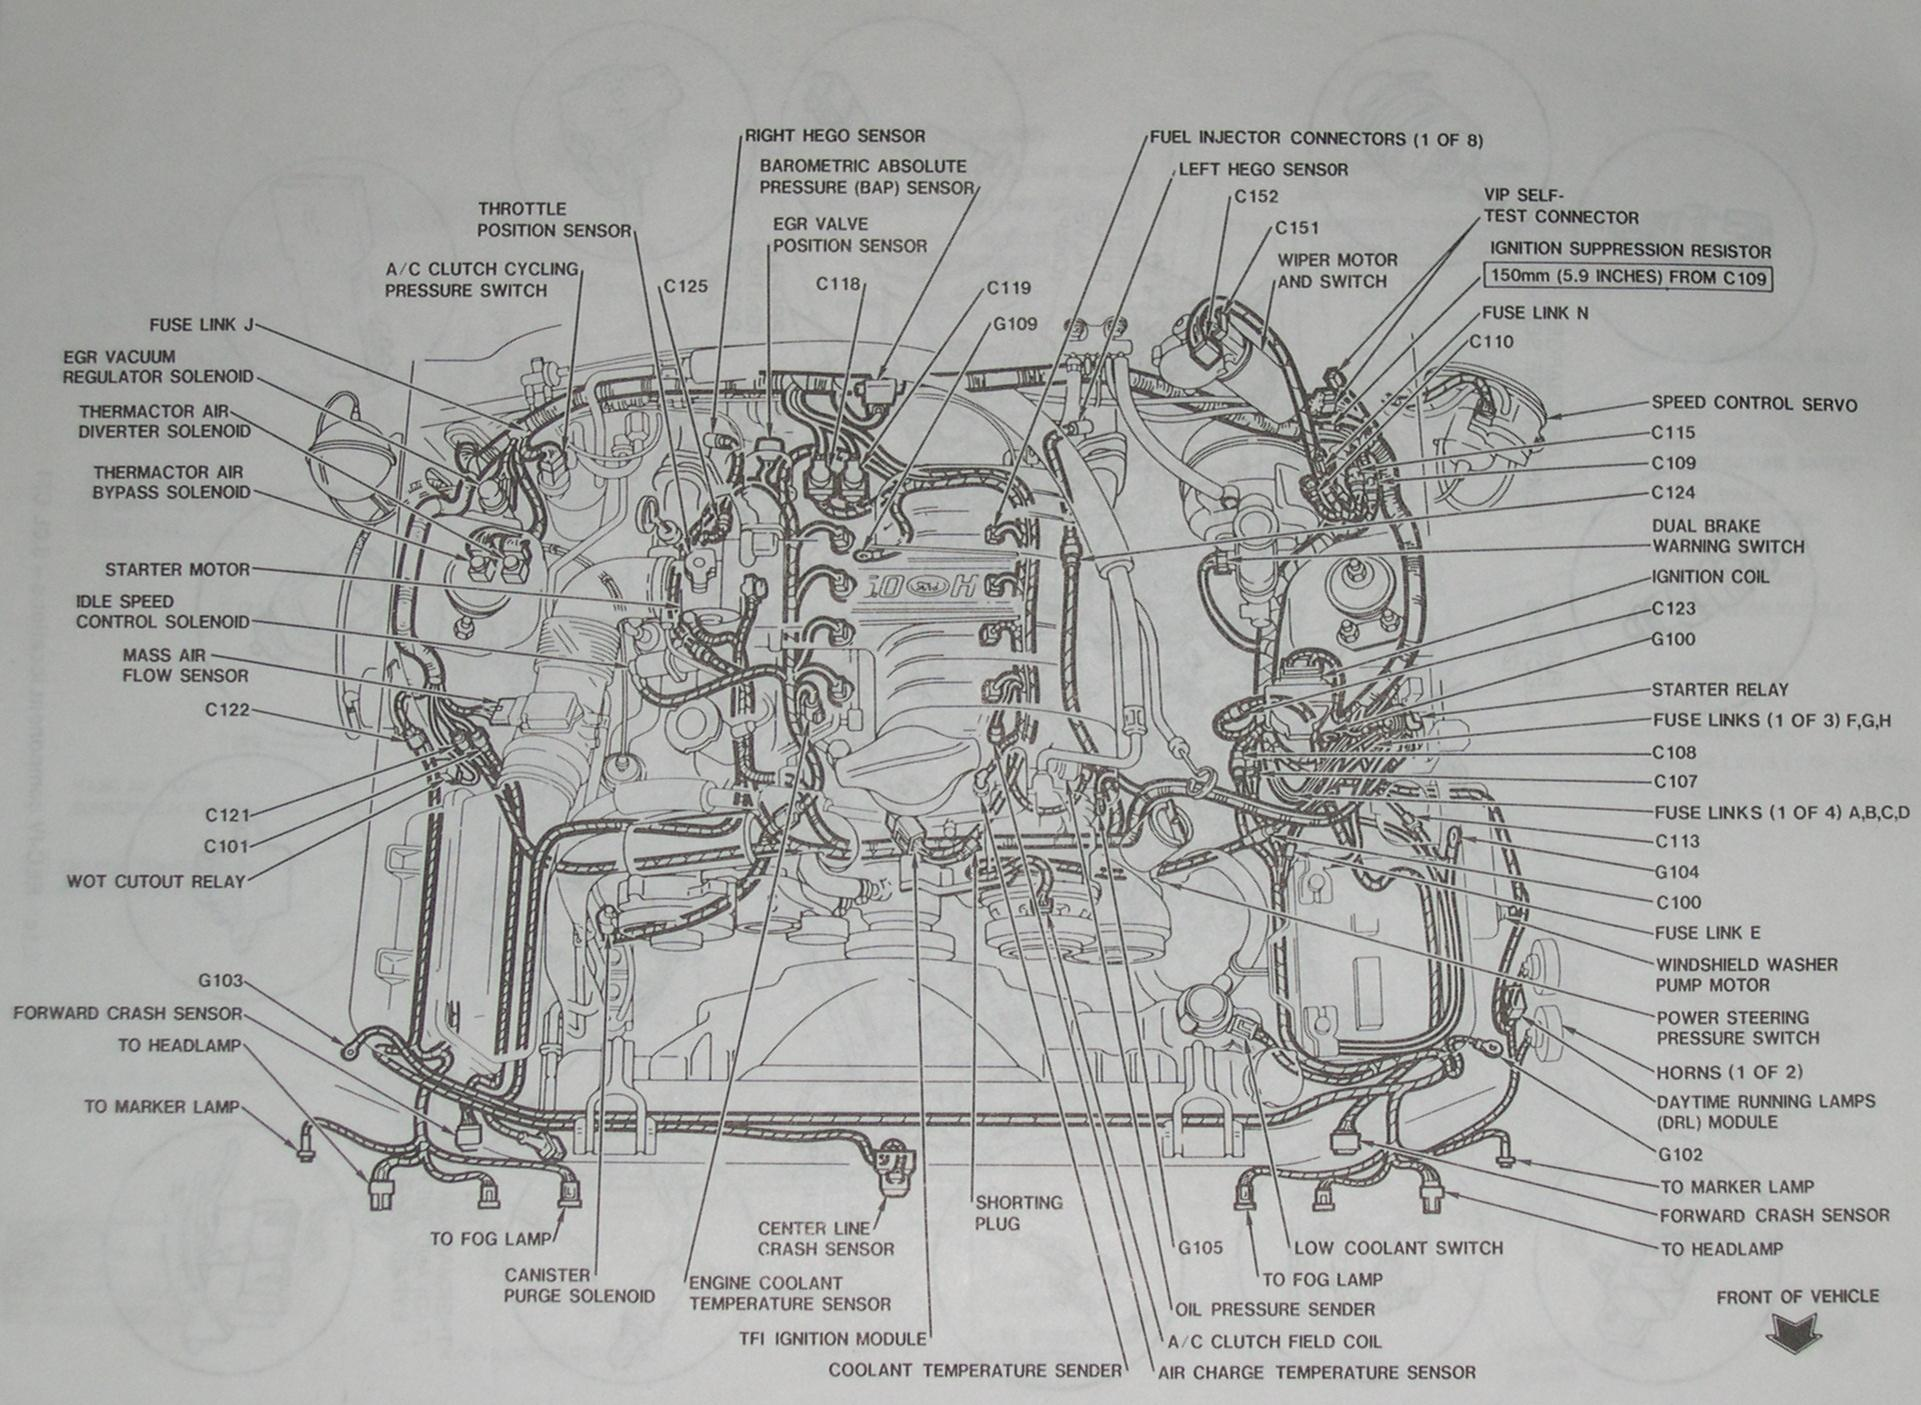 2006 Mustang Ignition Diagram Electrical Wiring Diagrams Headlight 06 Private Sharing About U2022 Fuel System